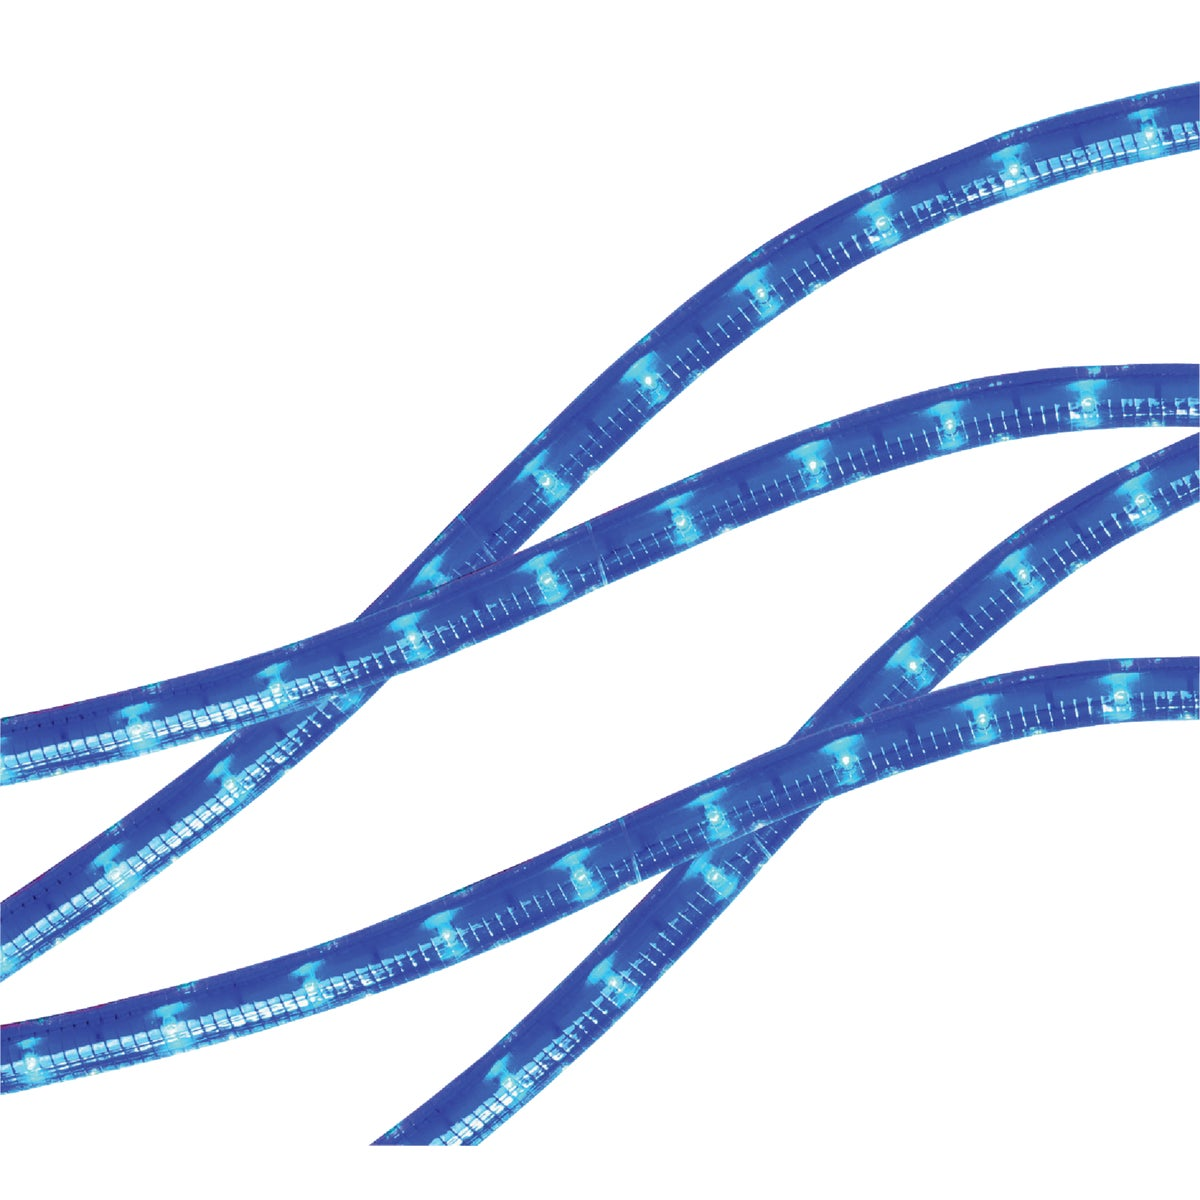 Neo Neon 18' BLUE ROPE LIGHT DL-2W-18FT-1